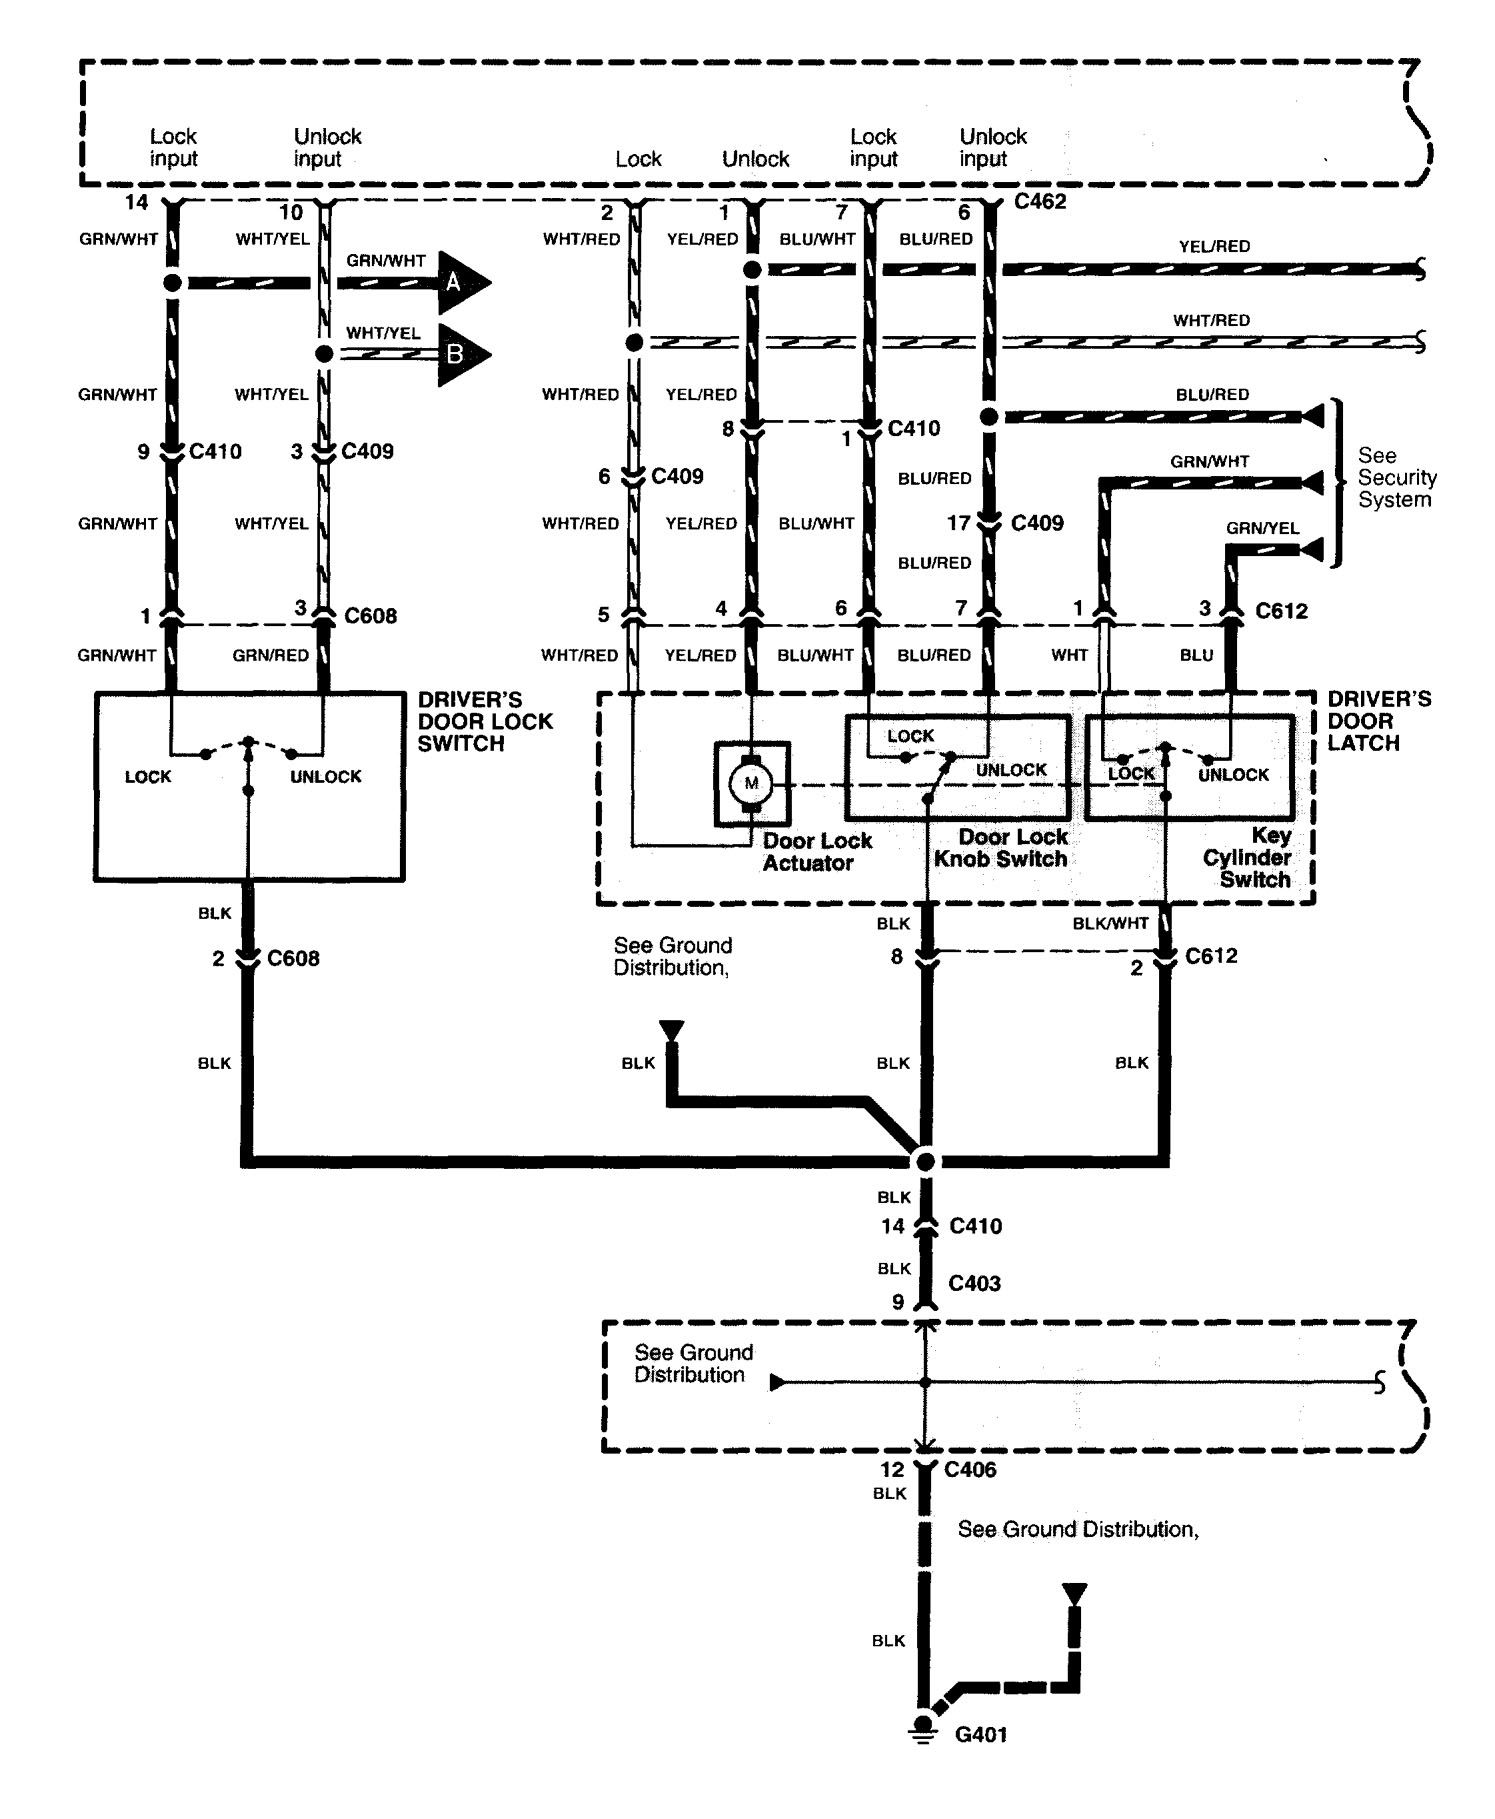 Acura 2008 Wiring Diagram - Wiring Diagram Directory on